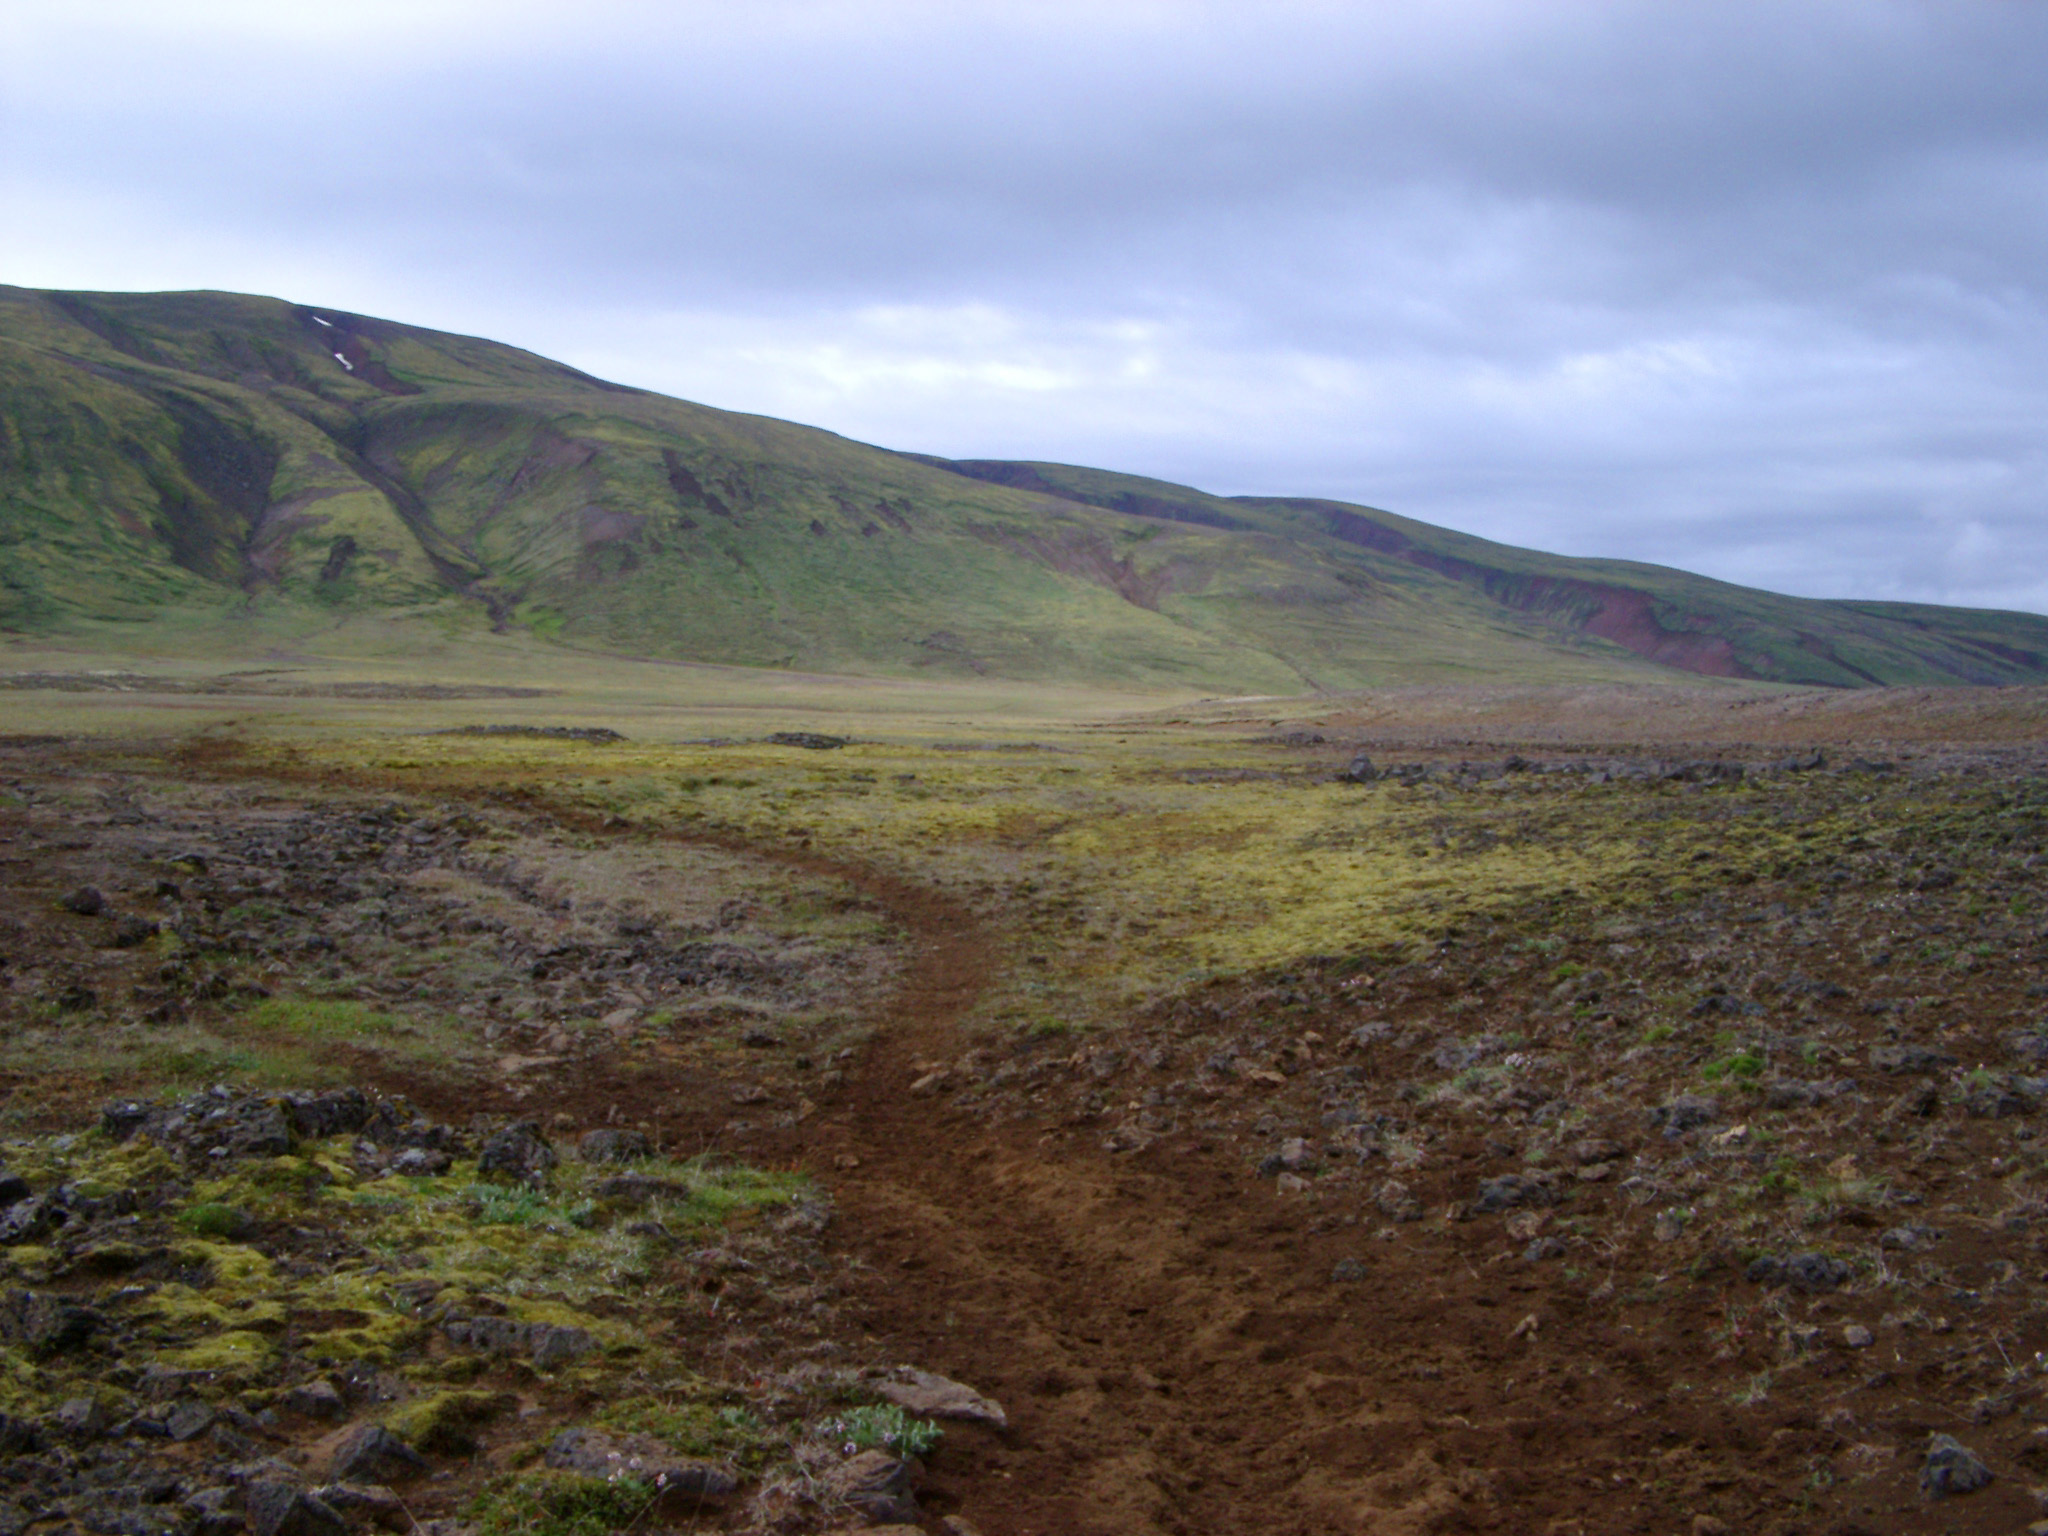 Remote barren landscape in Iceland with path leading through the volcanic earth across the lowland plains towards a mountain range